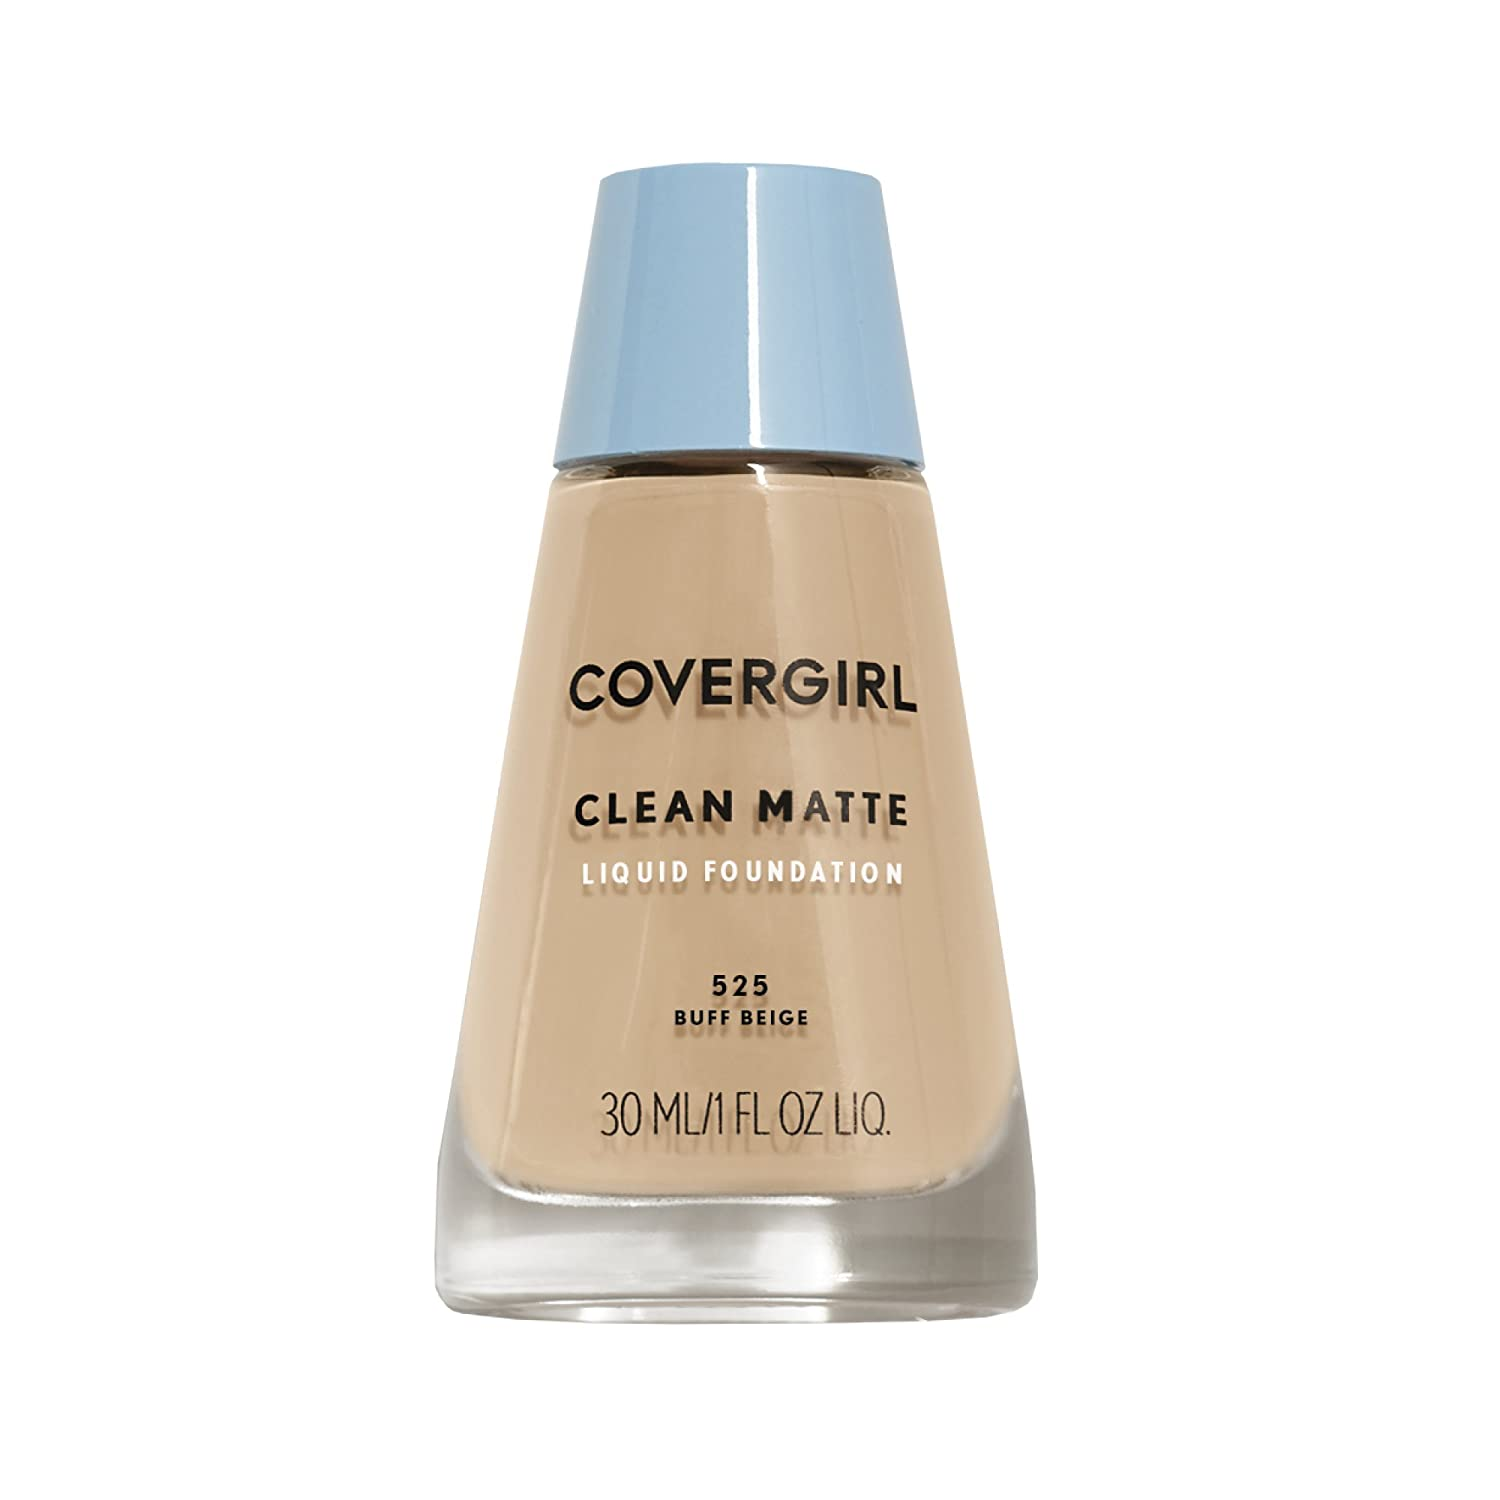 COVERGIRL Clean Matte Liquid Foundation Buff Beige 525, 1 oz (packaging may vary)